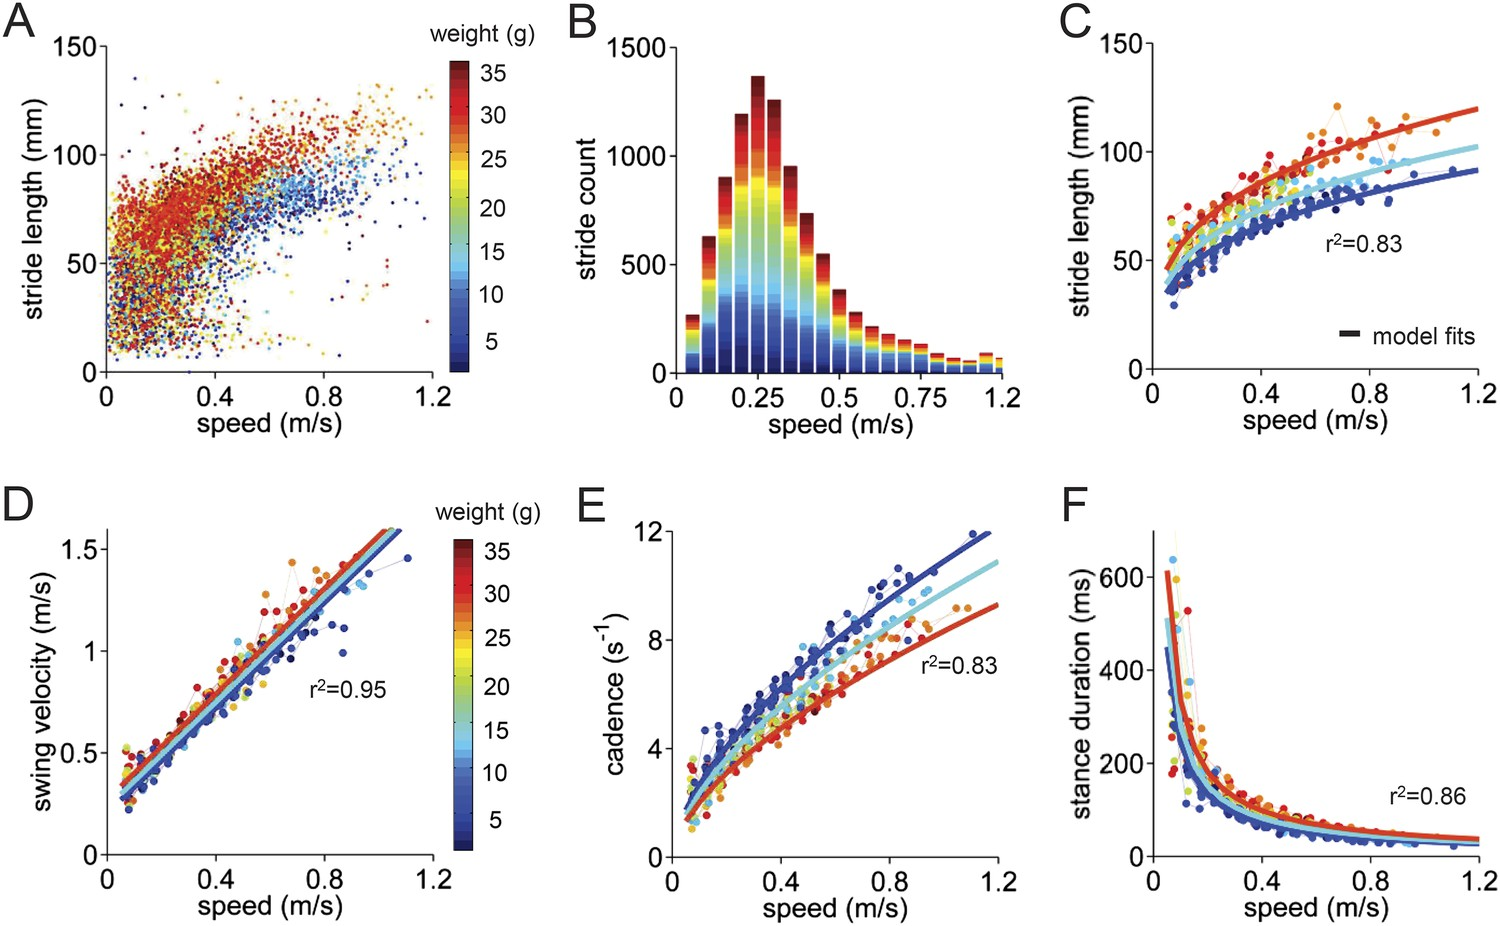 A Quantitative Framework For Whole Body Coordination Reveals By The Letter M In Ladder Logic Diagrams Continuous Motor Operation Basic Stride Parameters Can Be Predicted Using Only Walking Speed And Size